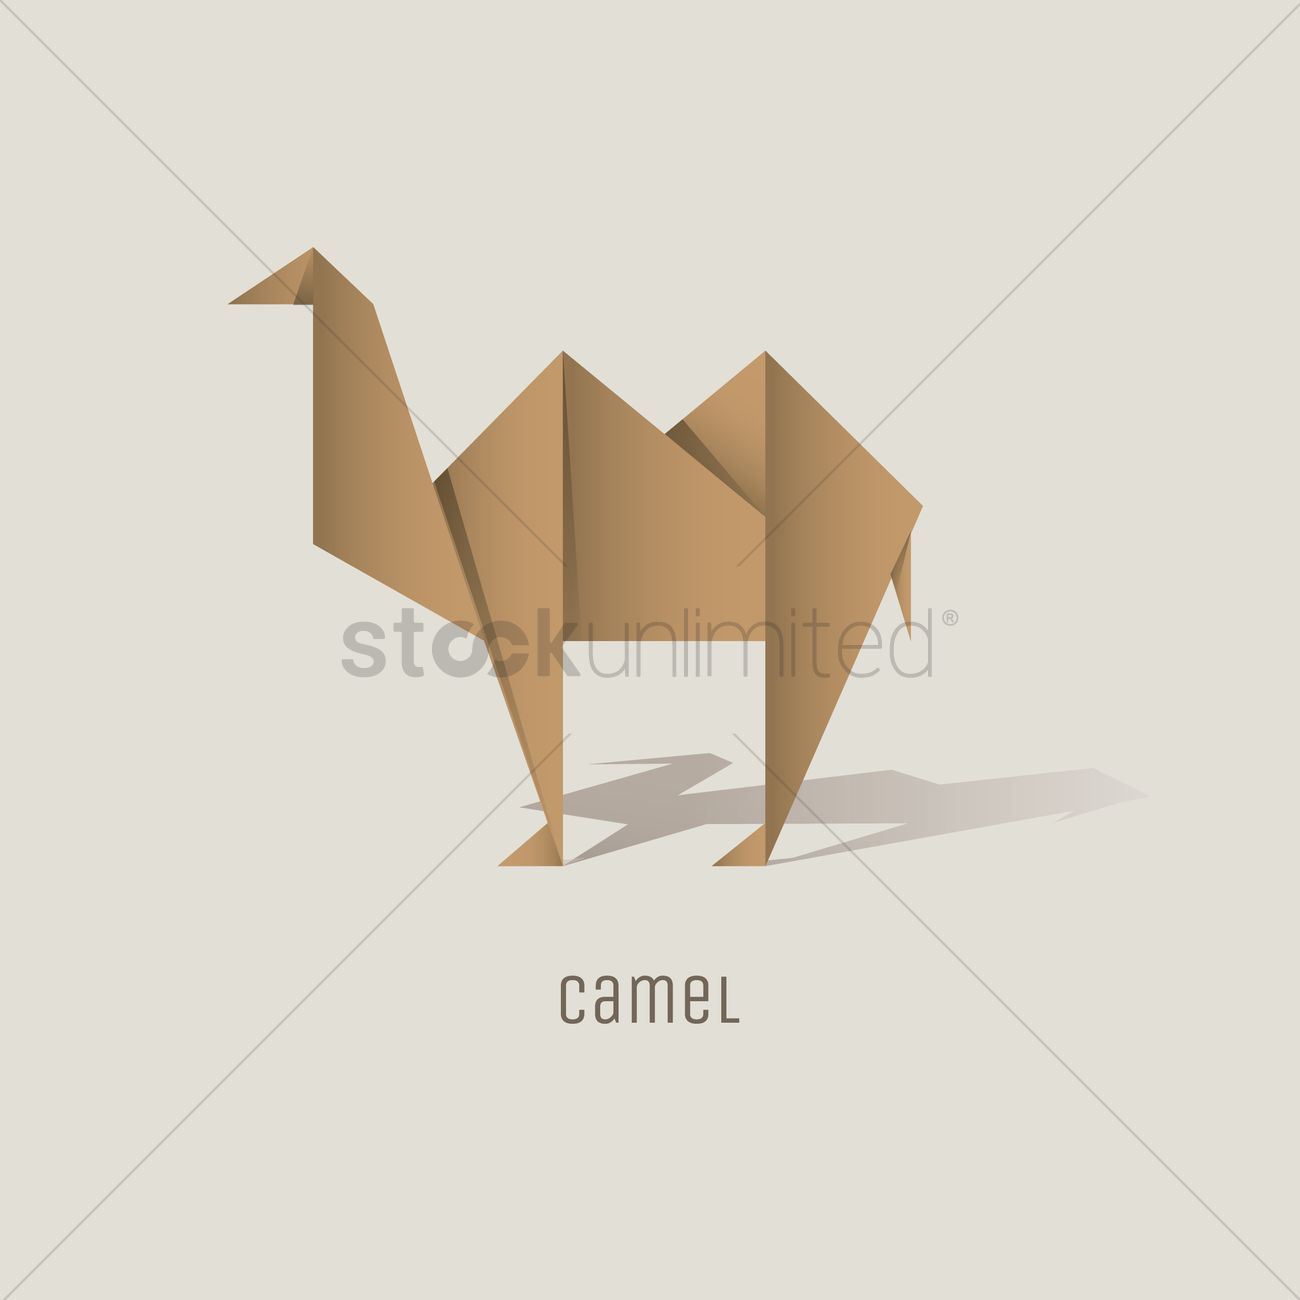 Origami Camel Vector Graphic